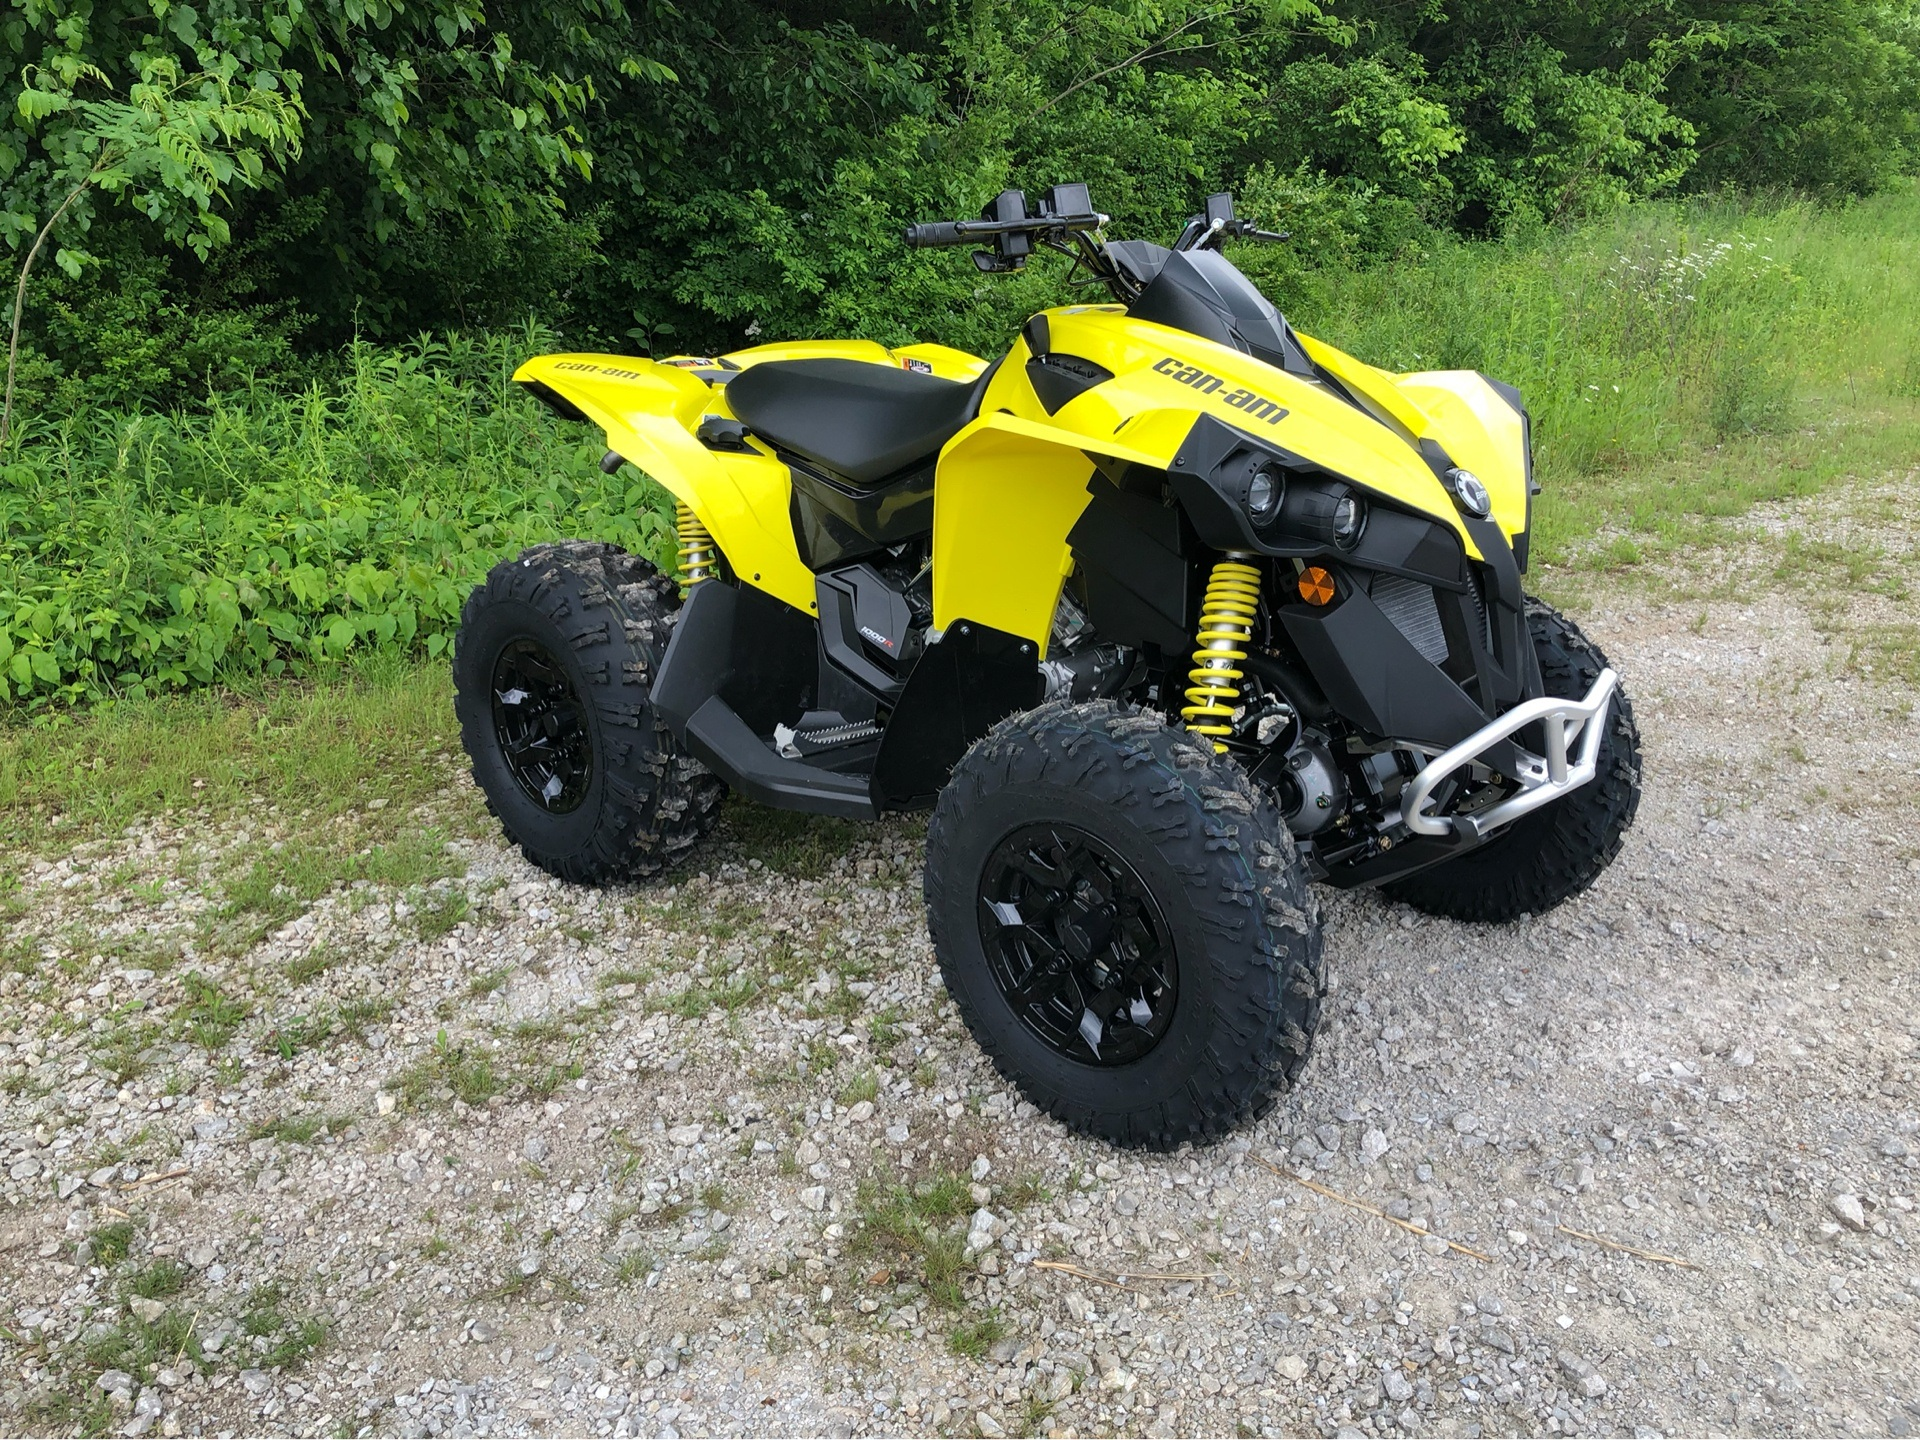 2019 Can-Am Renegade 1000R in Harrison, Arkansas - Photo 1